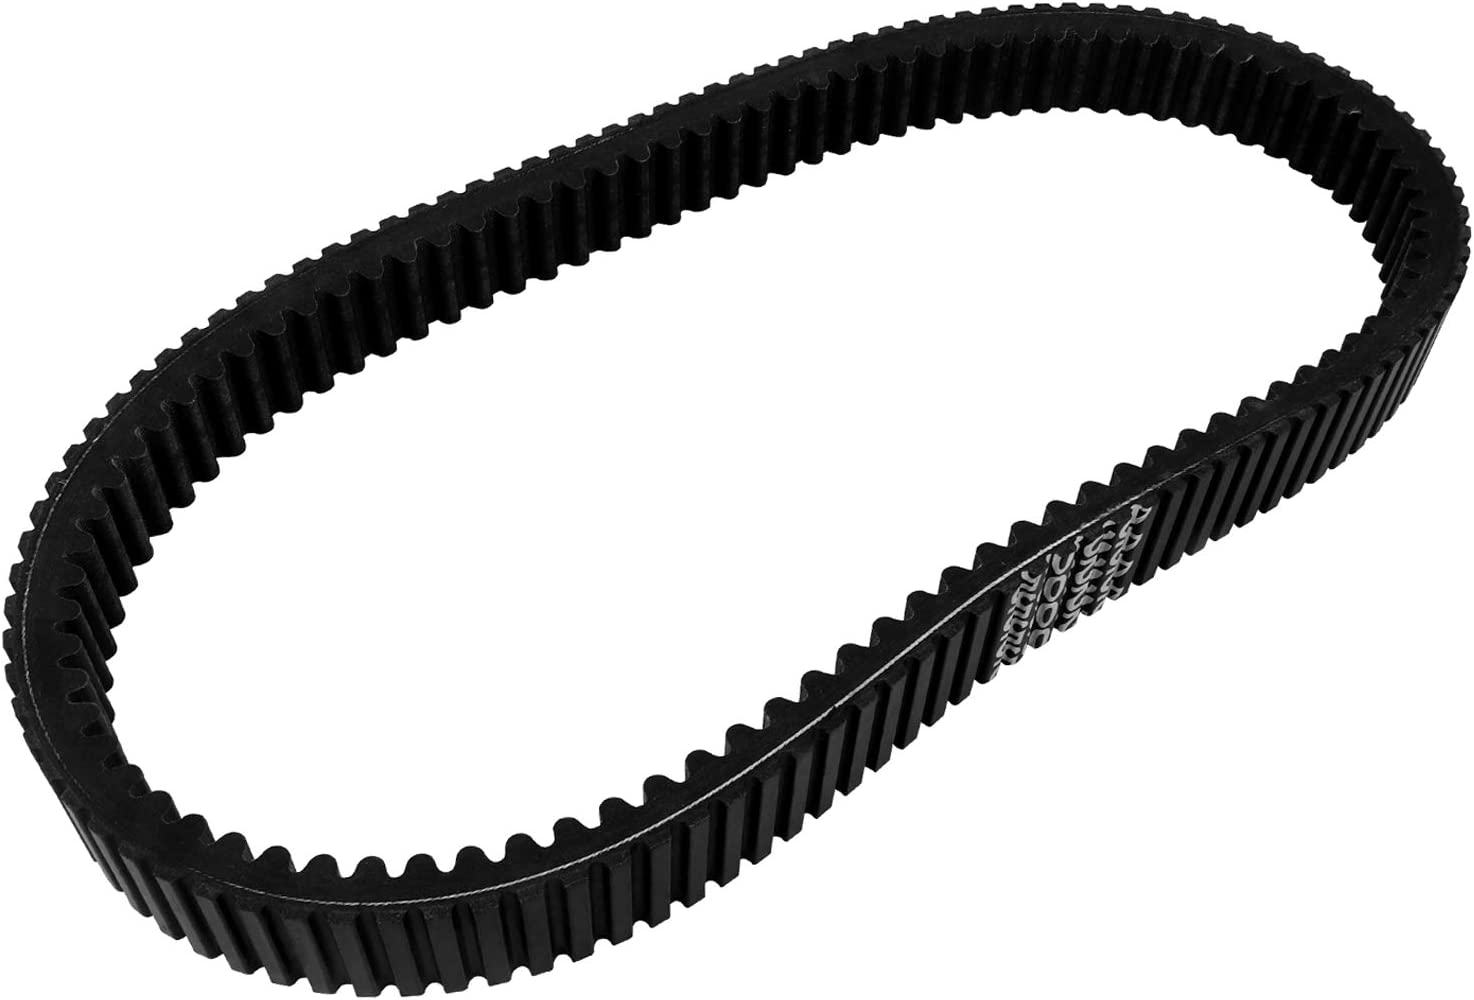 Drive Belt for 2018 2019 2020 Can-Am Maverick X3 Turbo R Max RR Replaces CAN-AM OEM# 422280652